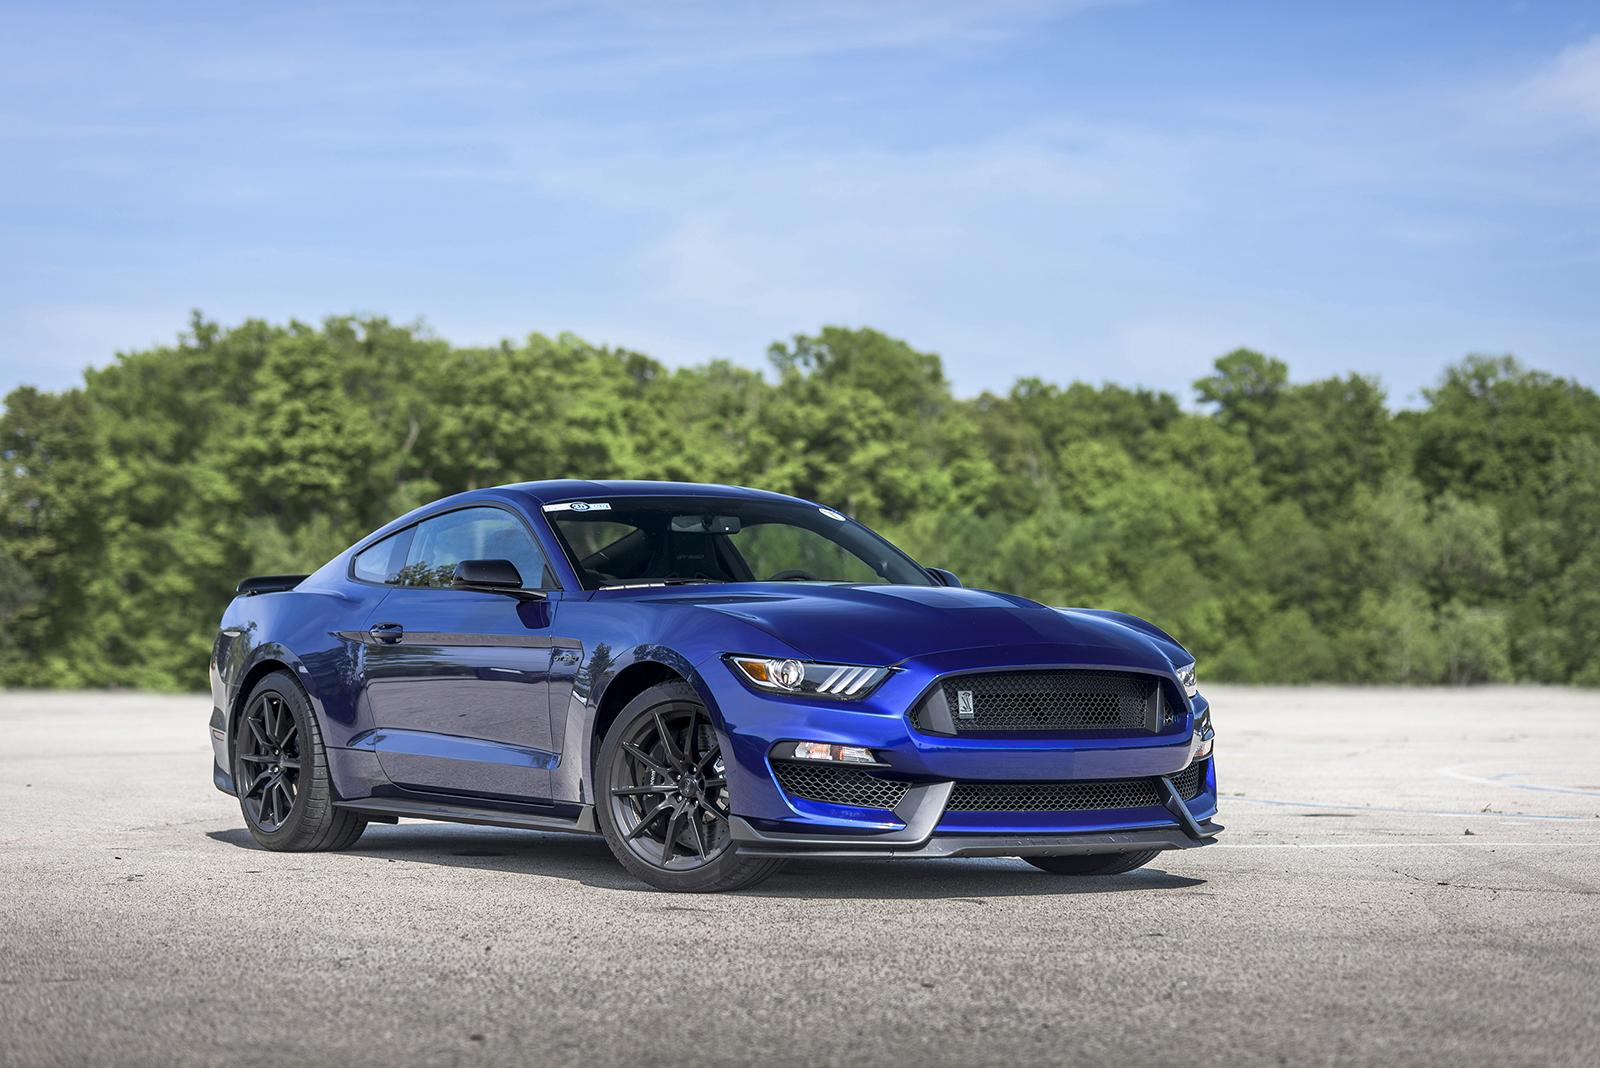 Hot to Trot: Ford's Fastest Mustang Yet